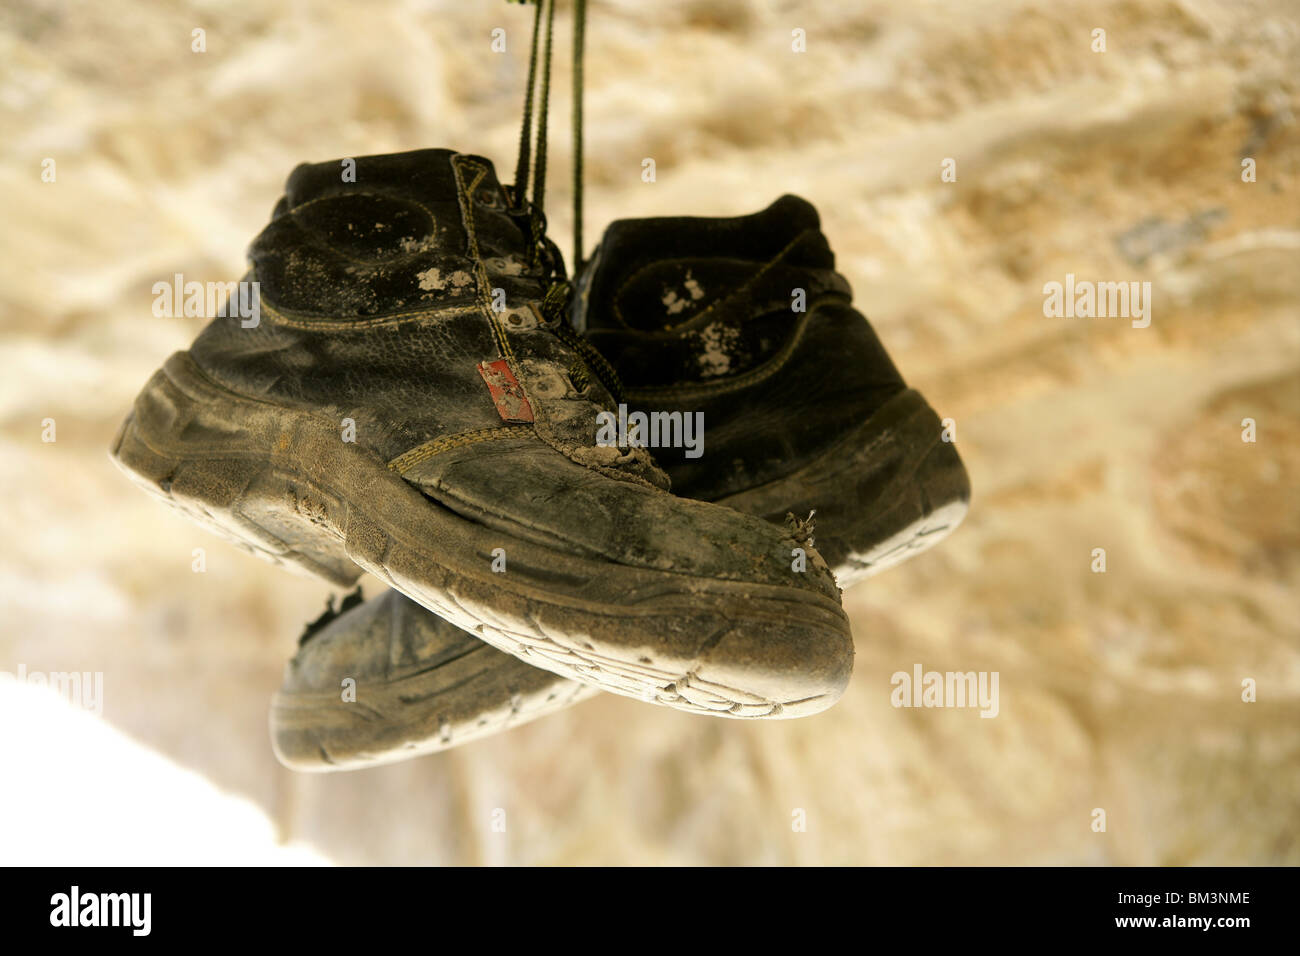 Construction worker left his aged old boots away, hunged on the rocks - Stock Image